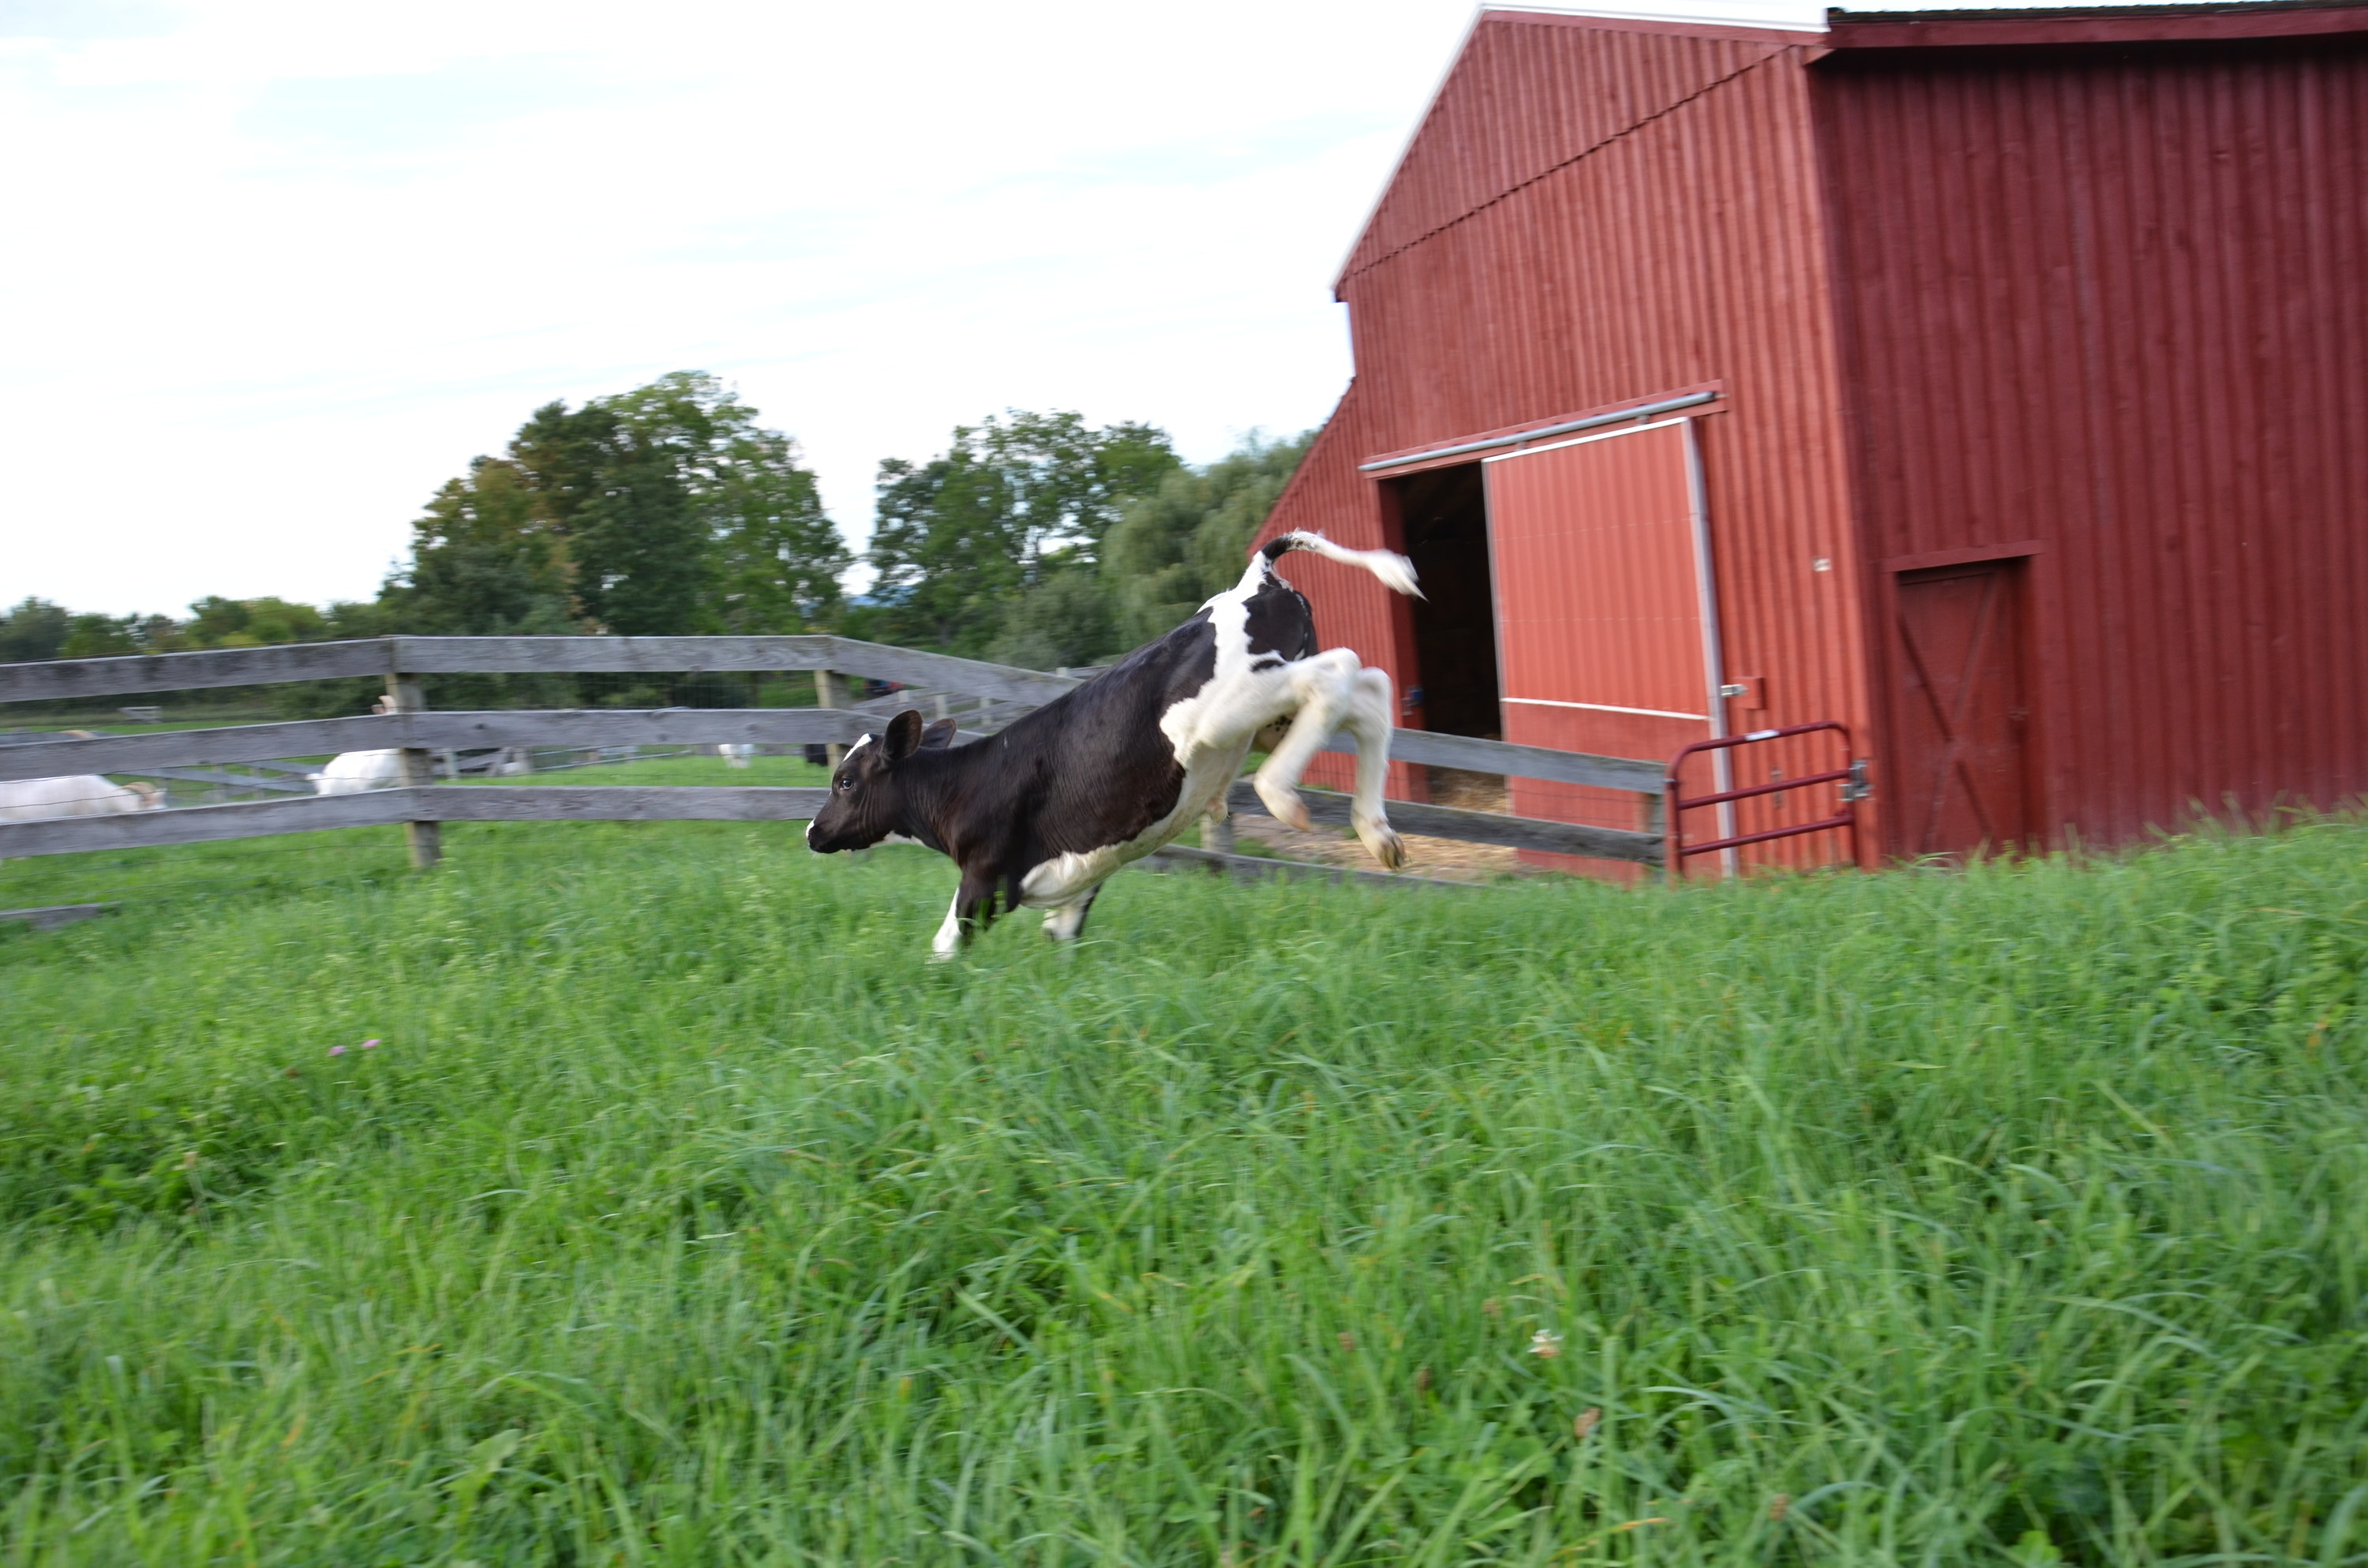 a cow jumping with legs in the air